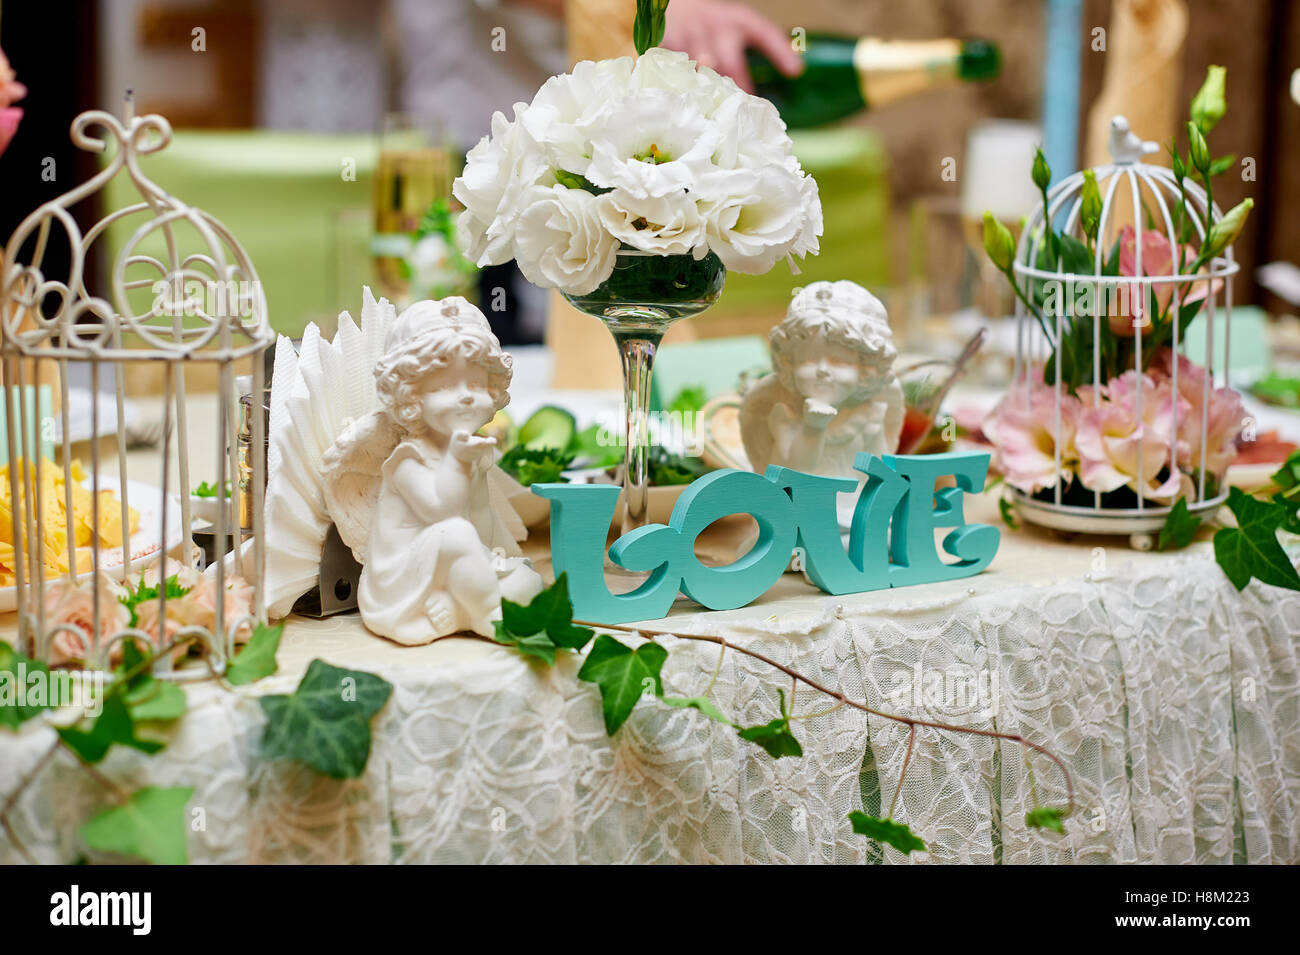 Wedding Decorations Of Flowers And Accessories On The Table Stock